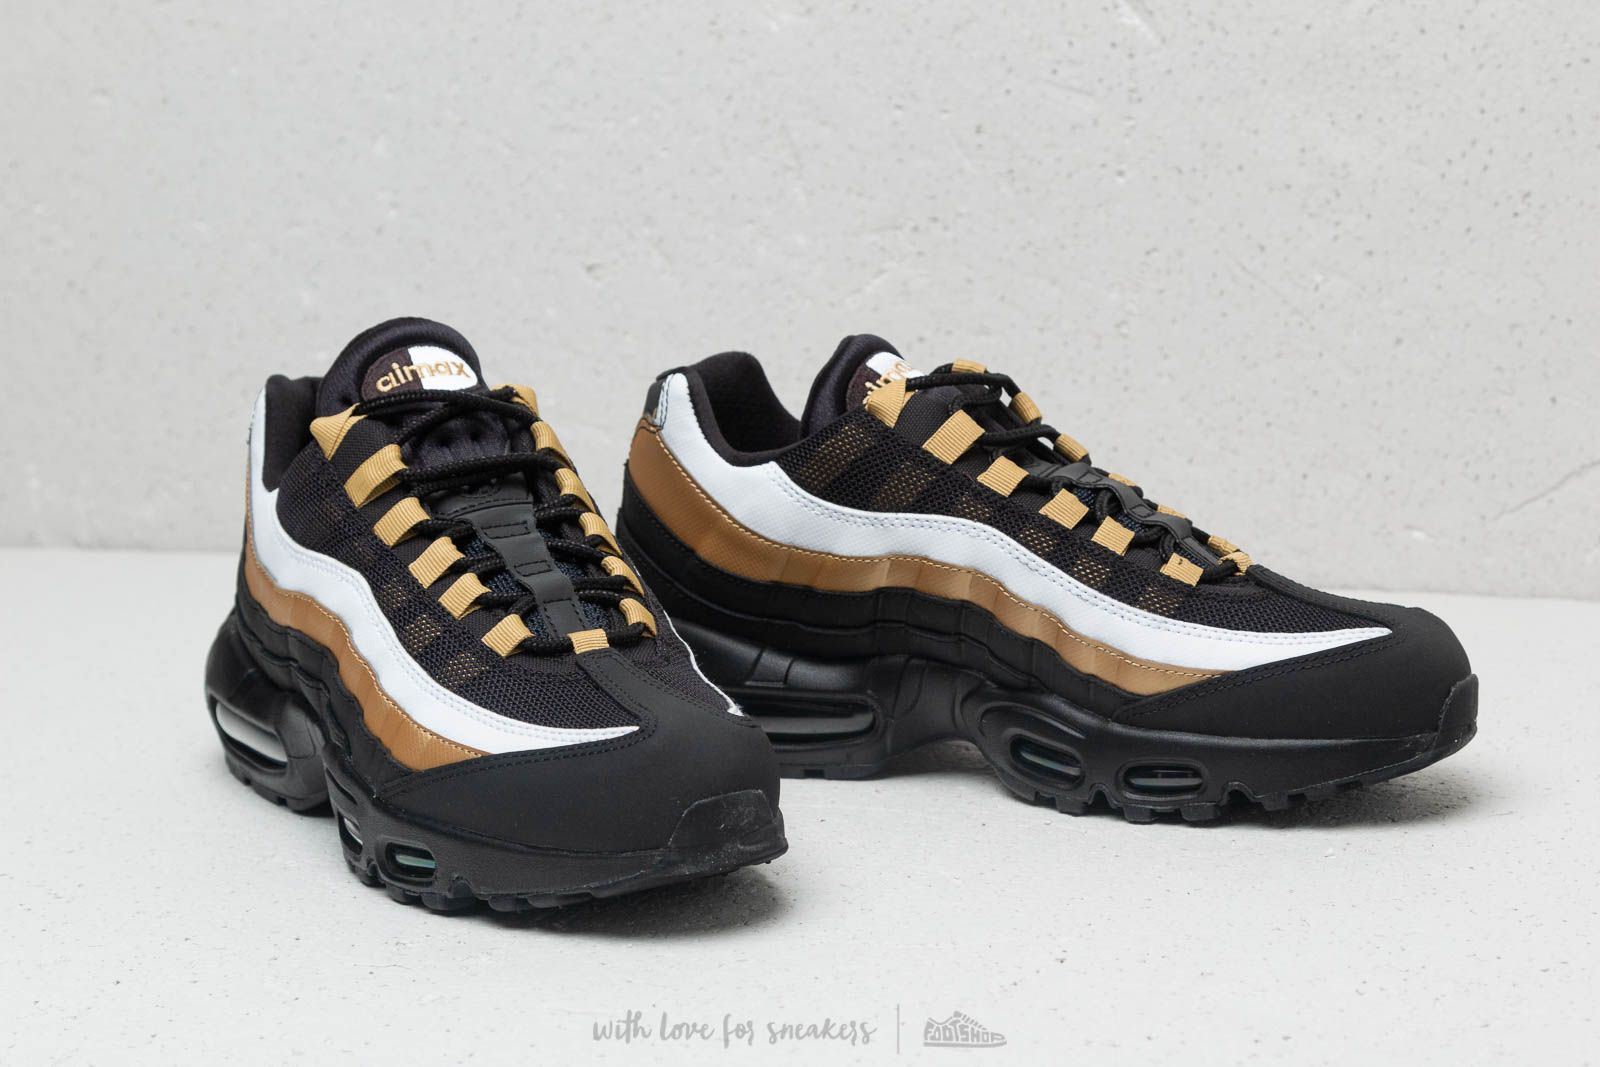 sports shoes 1bc9c 8b20c Nike Air Max 95 OG Black/ Black-Metallic Gold | Footshop